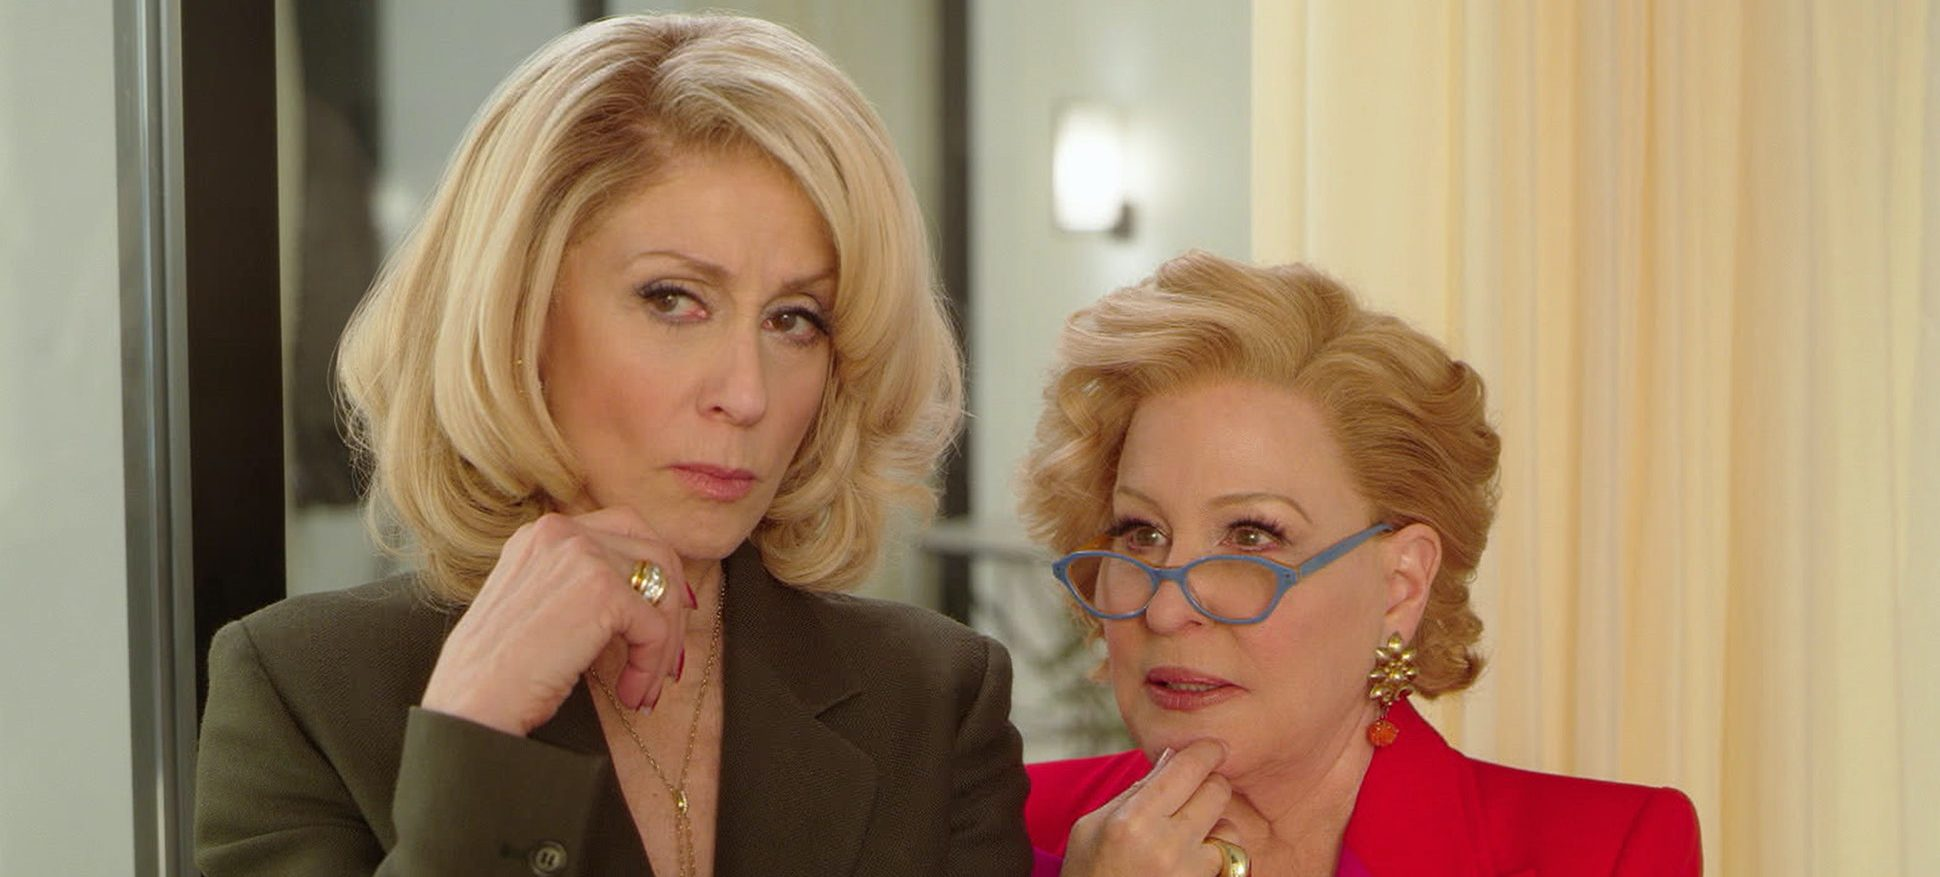 The Politician 2: Bette Midler and Judith Light